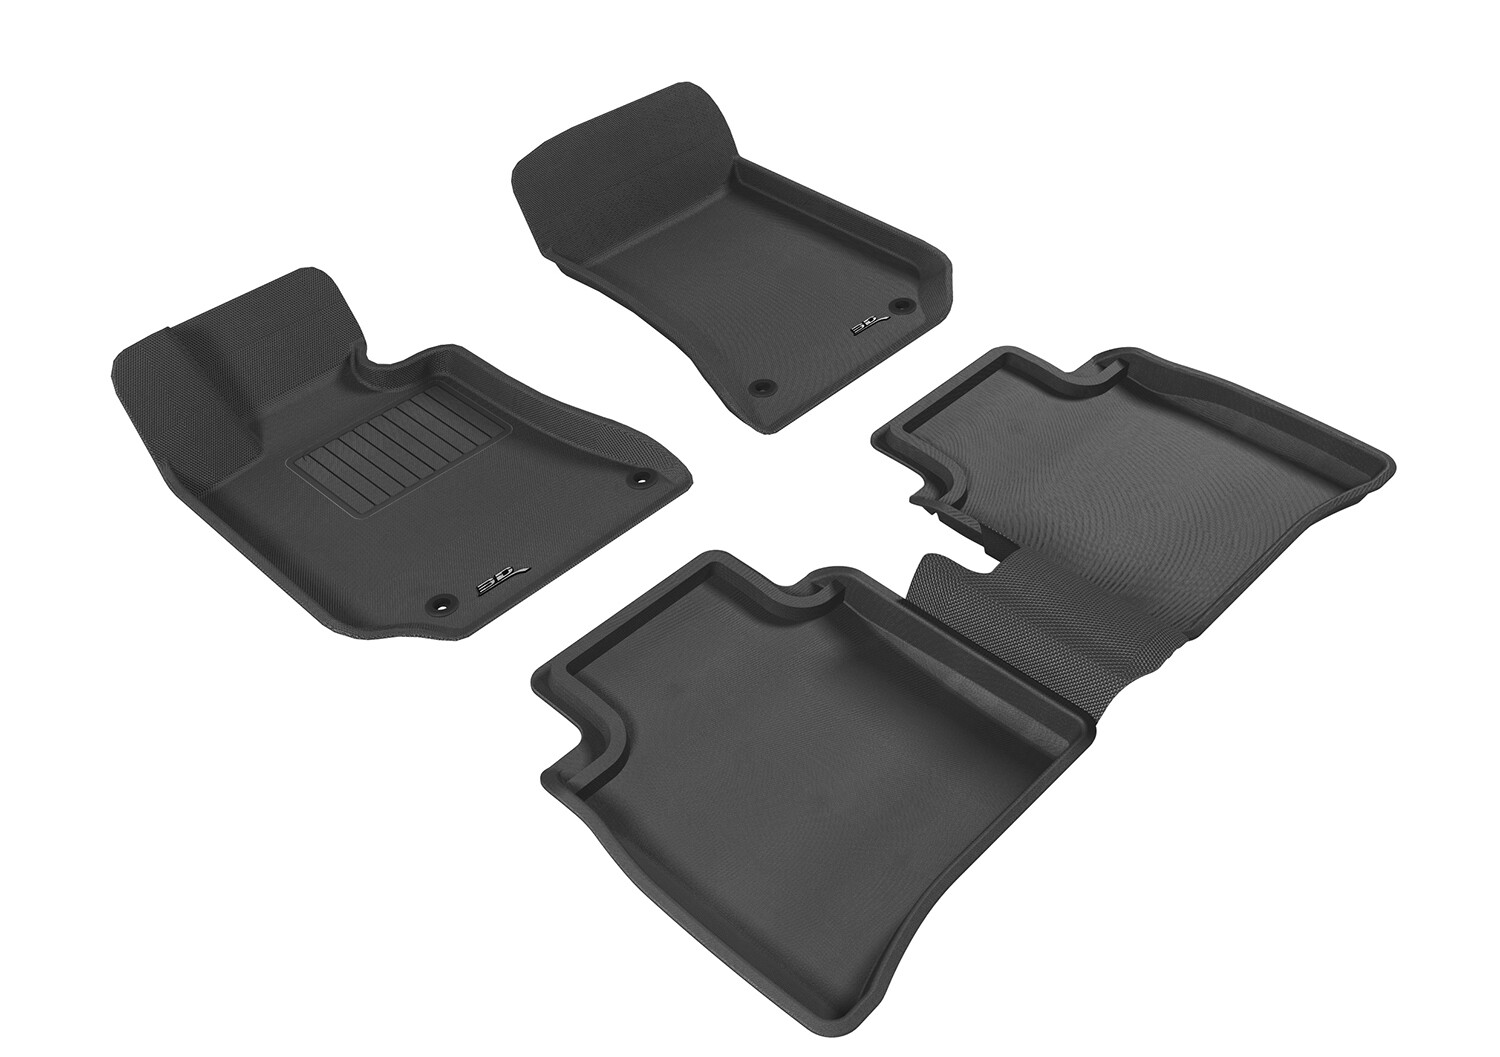 3D MAXpider Complete set MERCEDES BENZ E CLASS Long Axis (W212L), passenger side with retention device KAGU Car floor Mat backing